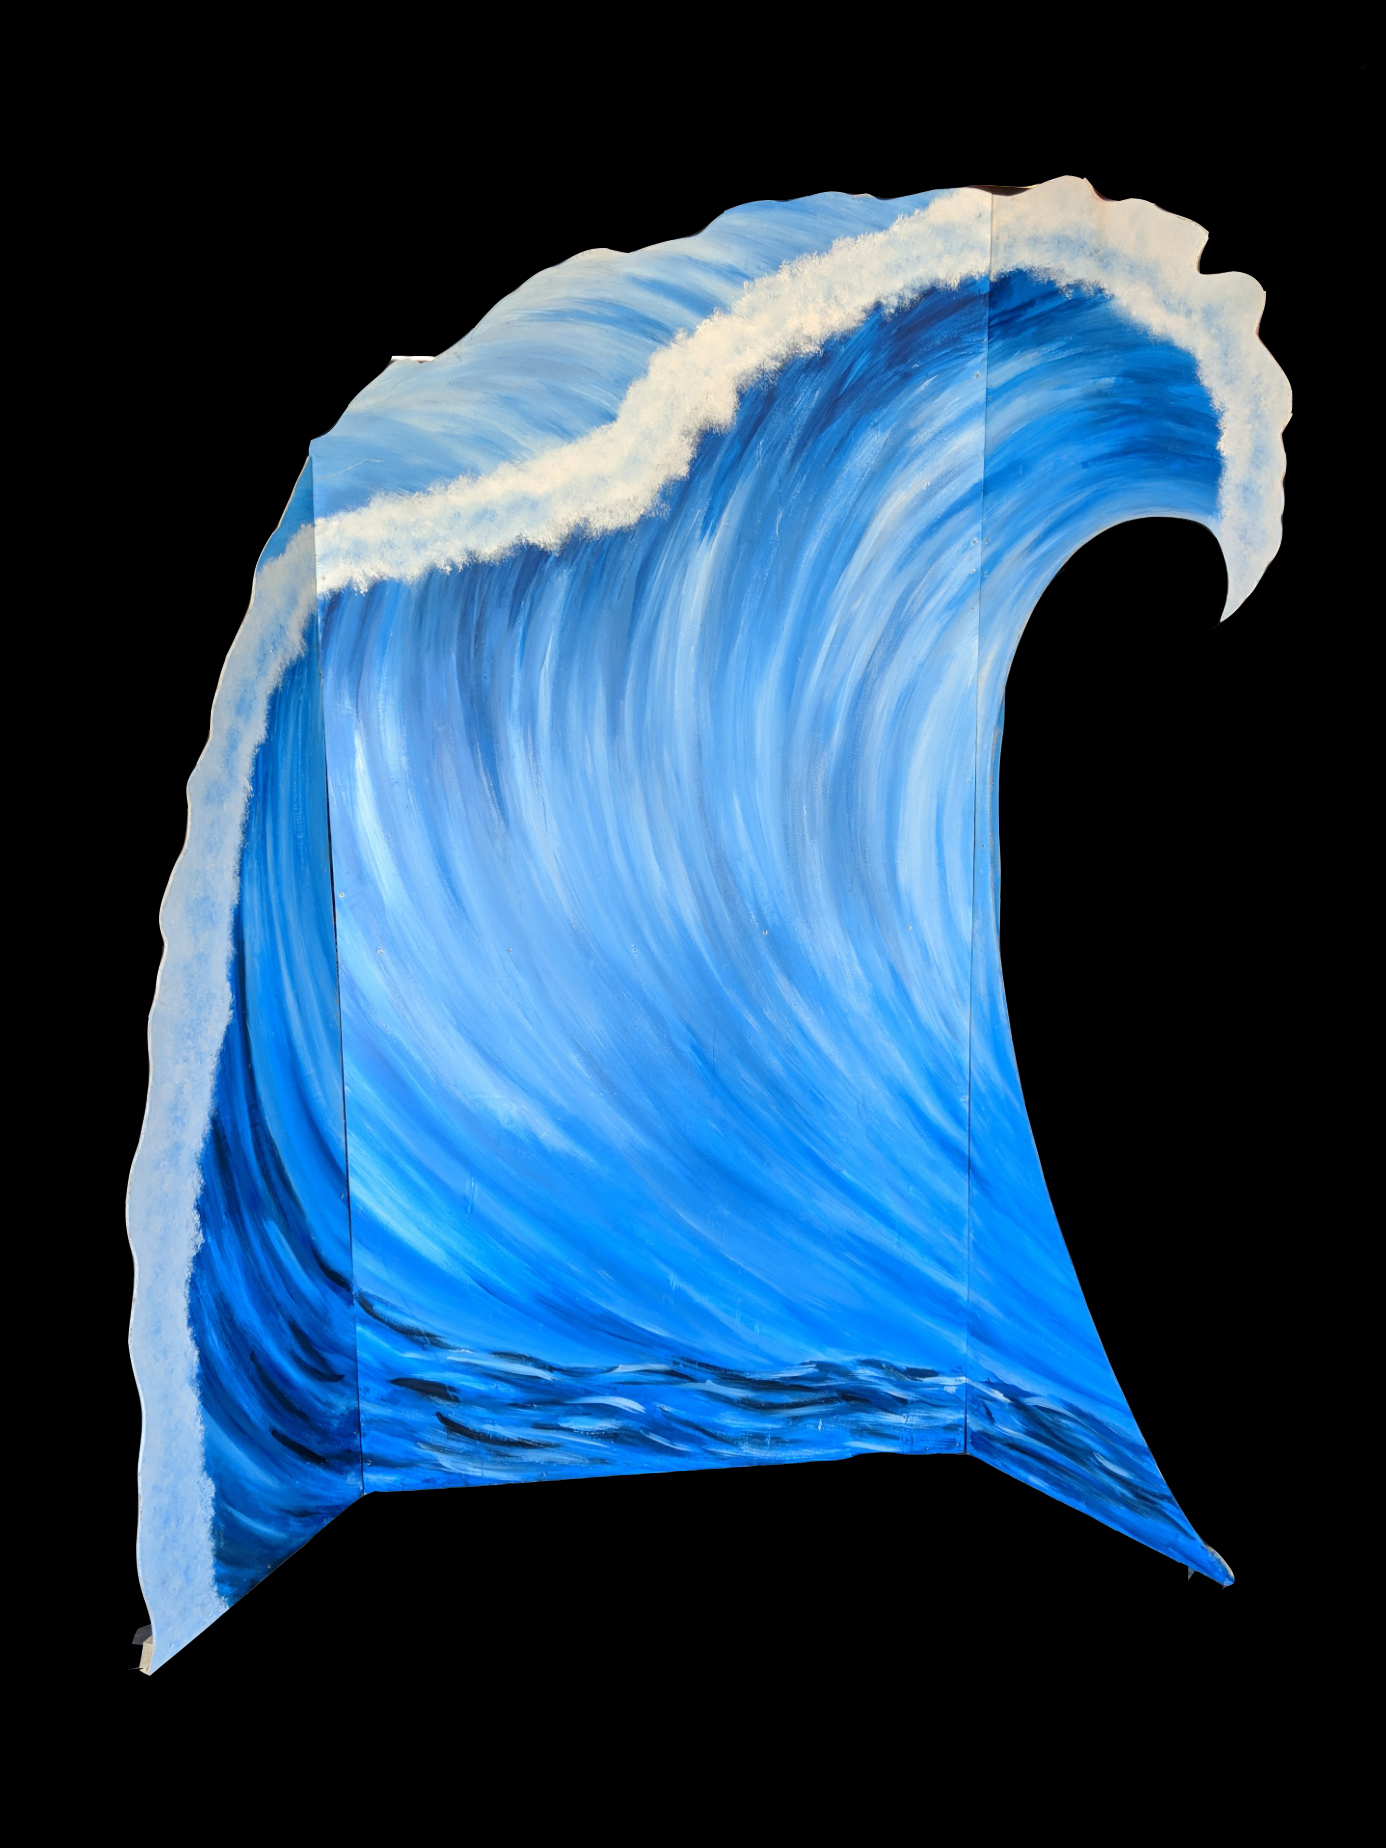 XXL Wave Backdrop